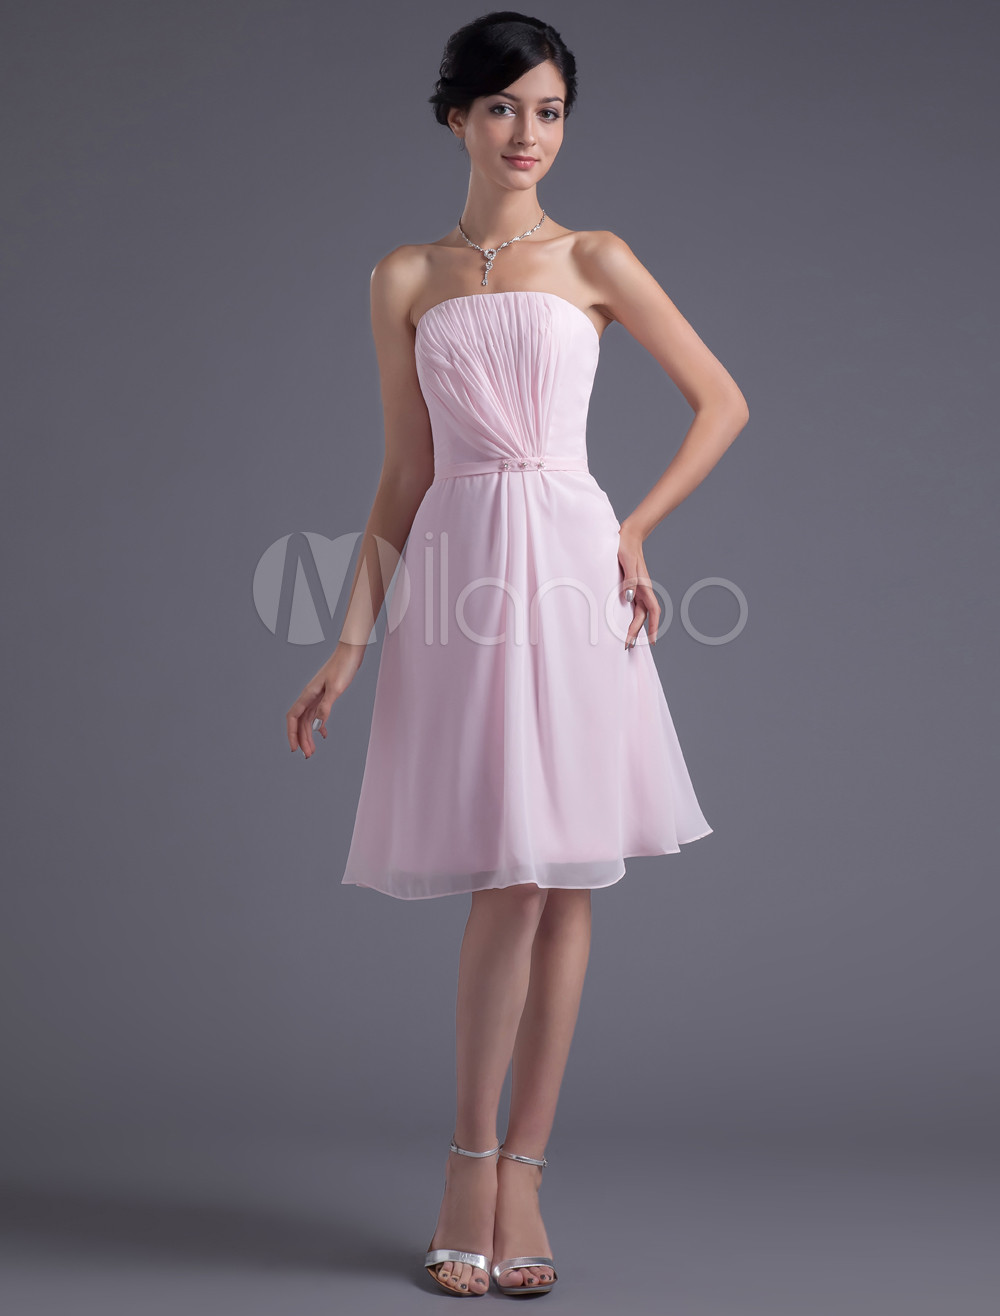 Buy A-line Pink Chiffon Strapless Knee-Length Bridesmaid Dress For Wedding for $100.79 in Milanoo store